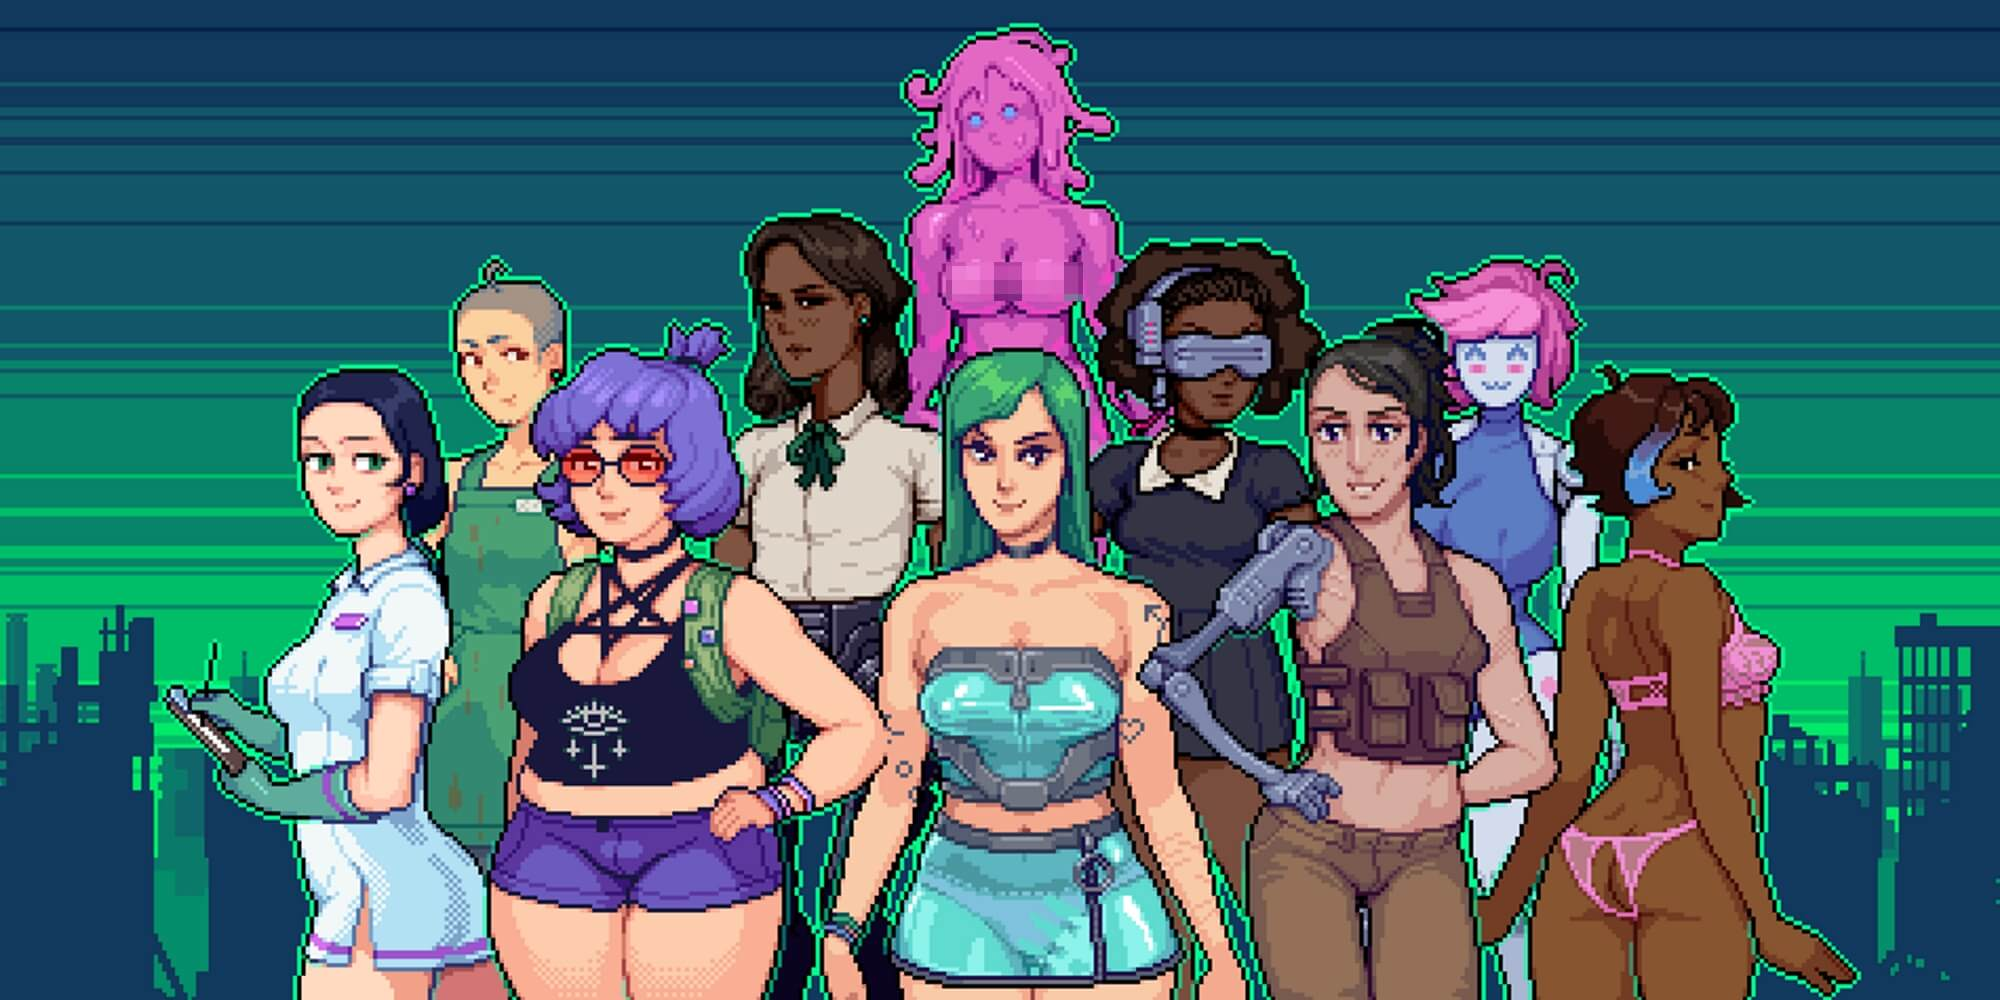 Trans porn game Hardcoded is embracing lesbian tentacle sex